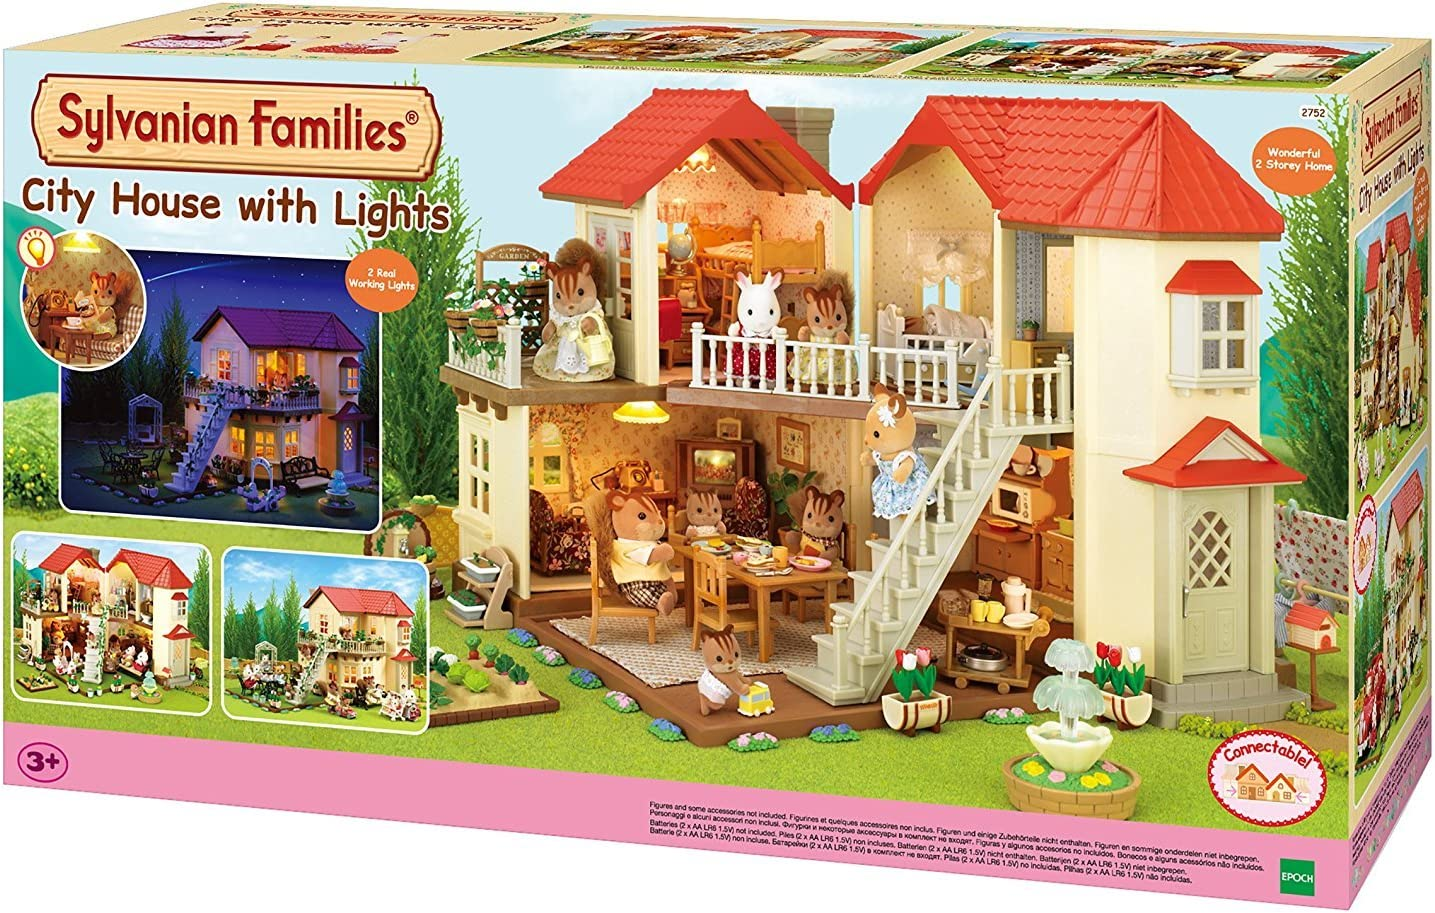 Sylvanian Families 9 City House with Lights, Multicolor